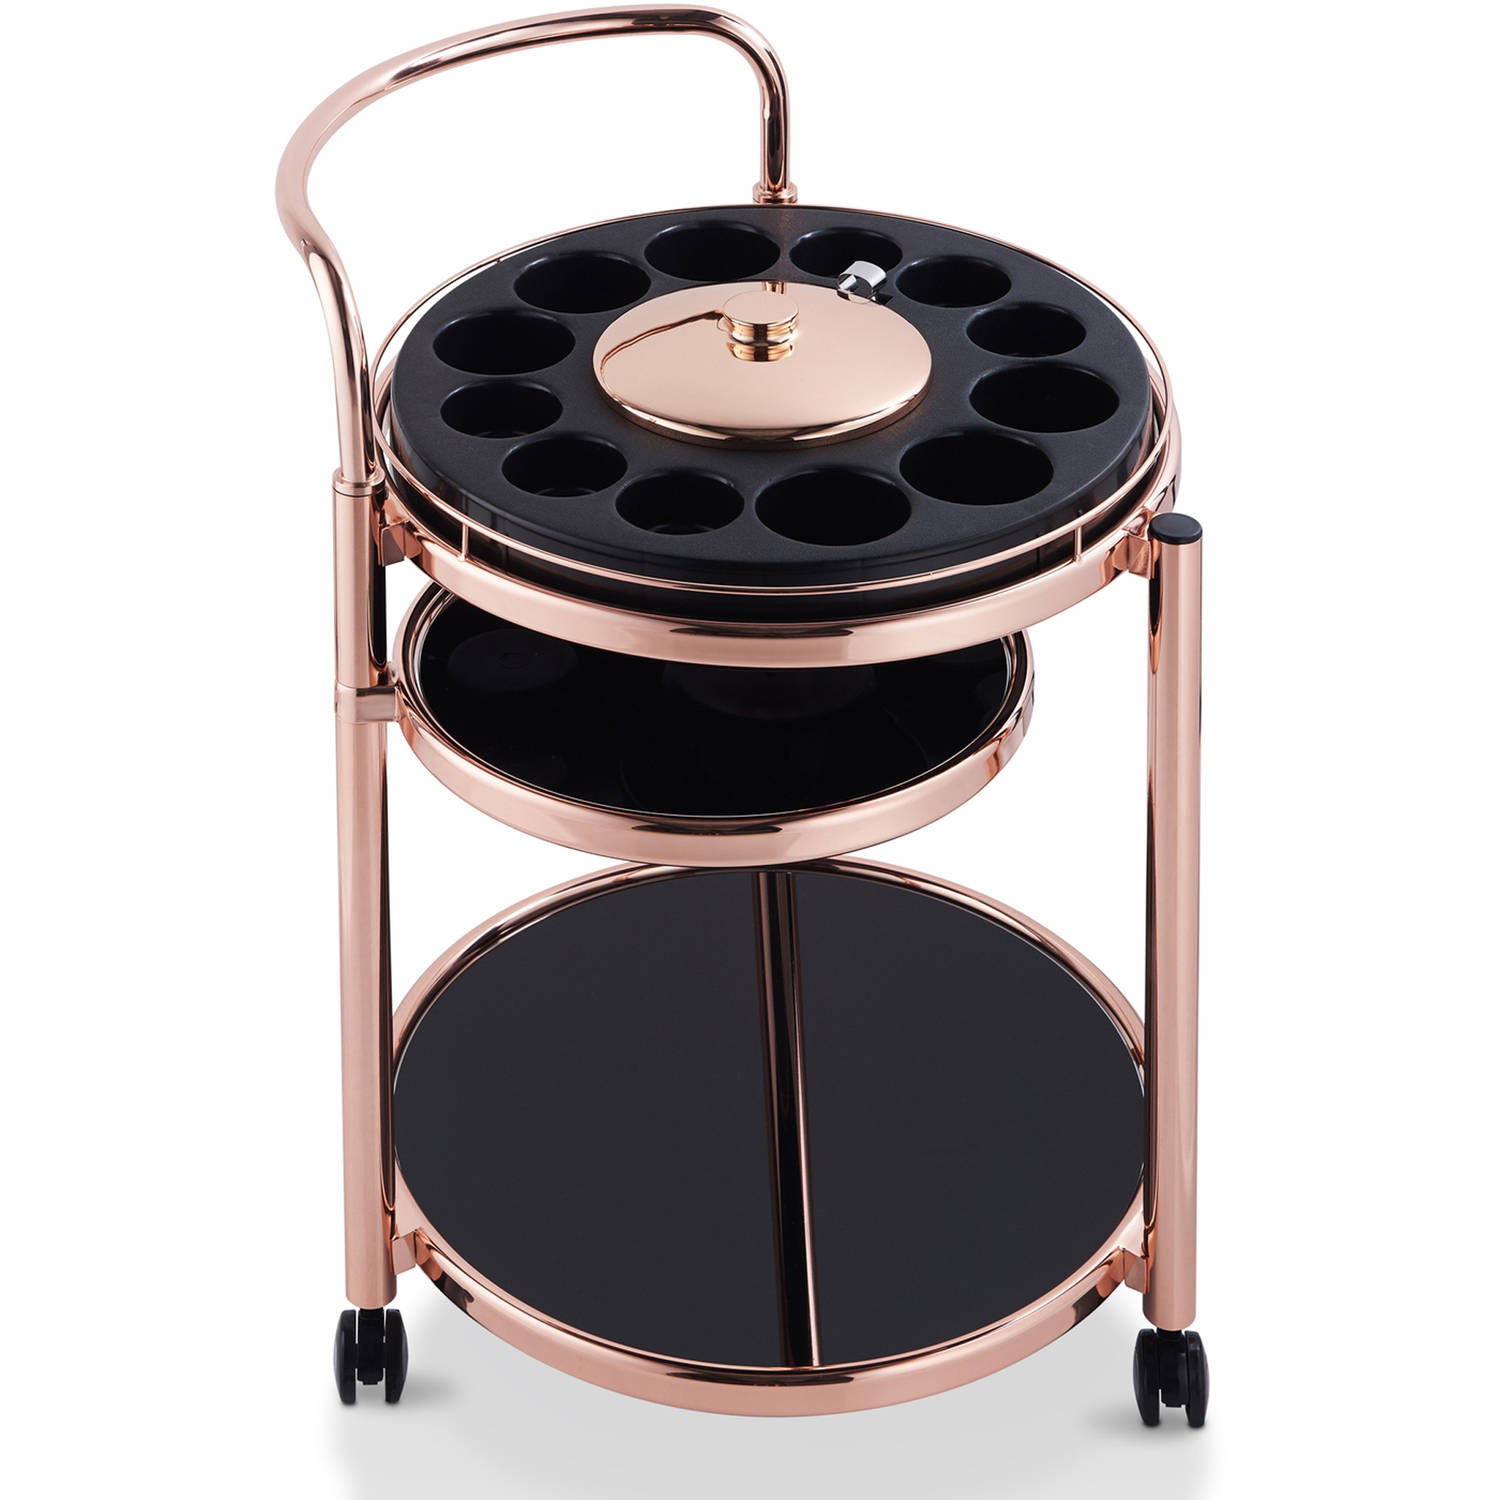 Furniture of America Kinnery Modern Serving Cart, Rose Gold by Furniture of America